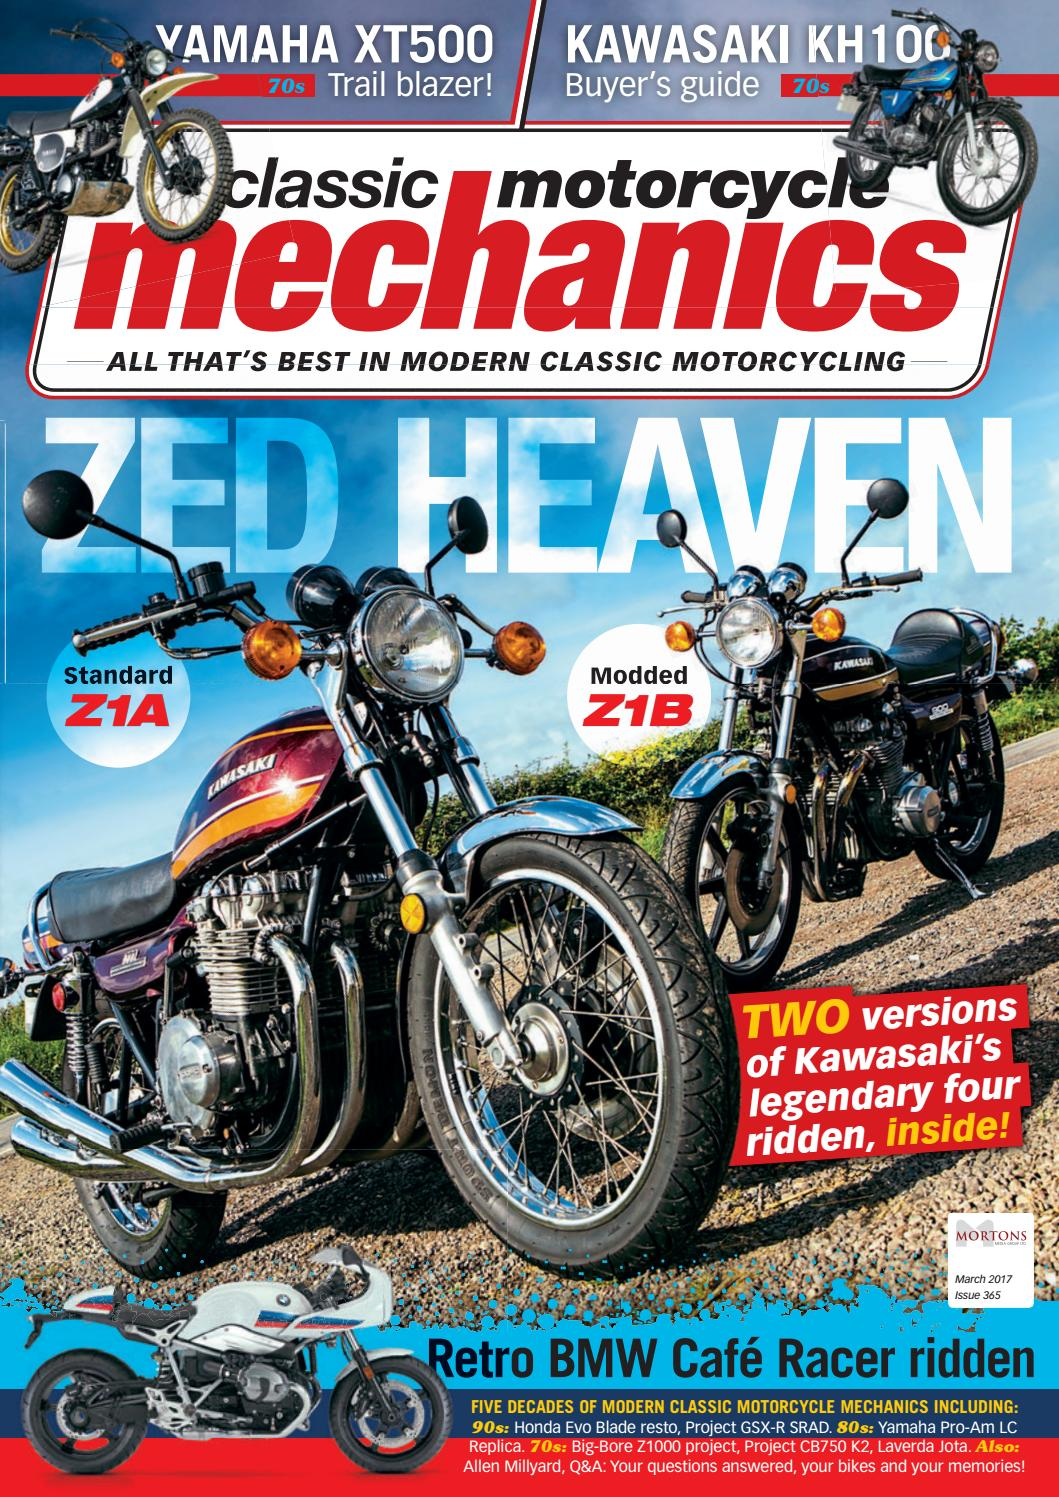 Classic Motorcycle Mechanics March 2018 By Mortons Media Group Ltd   Issuu